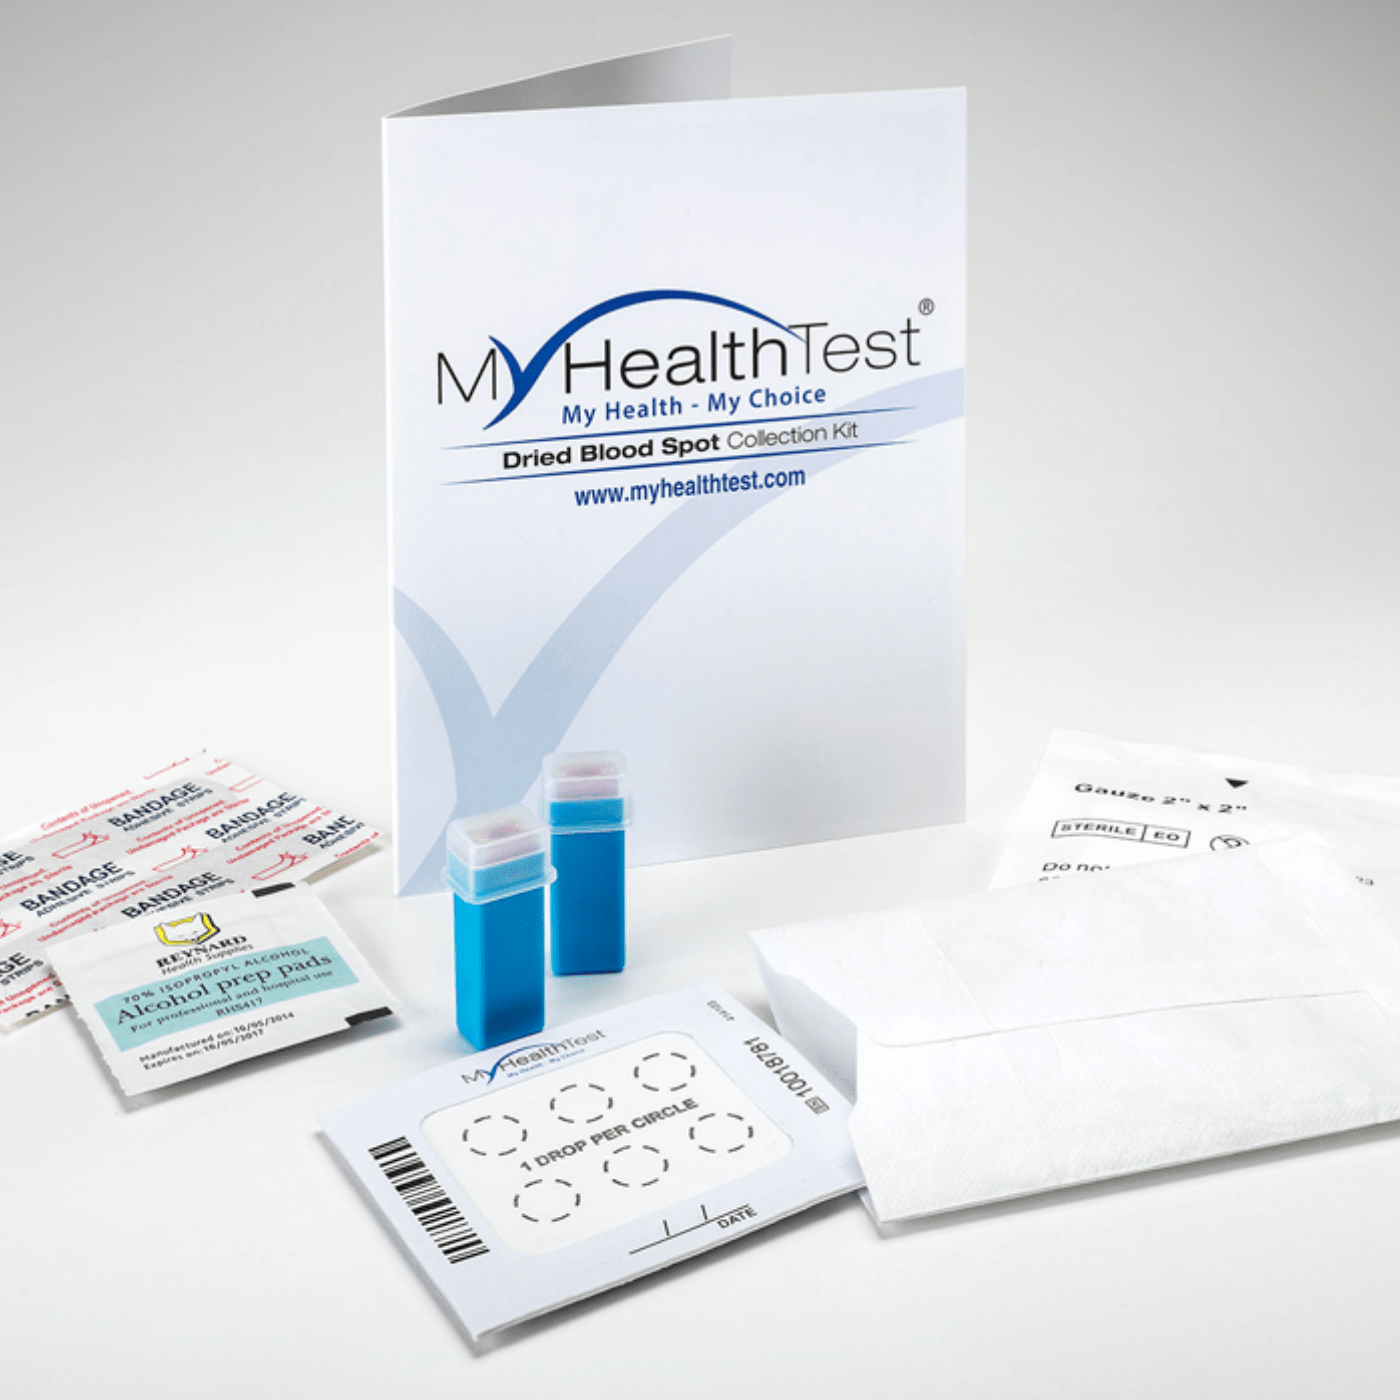 MyHealthTest HBA1C Test Service|Persons Hand Using MyHealthTest Kit|MyHealthTest Software On Laptop, Desktop & Mobile